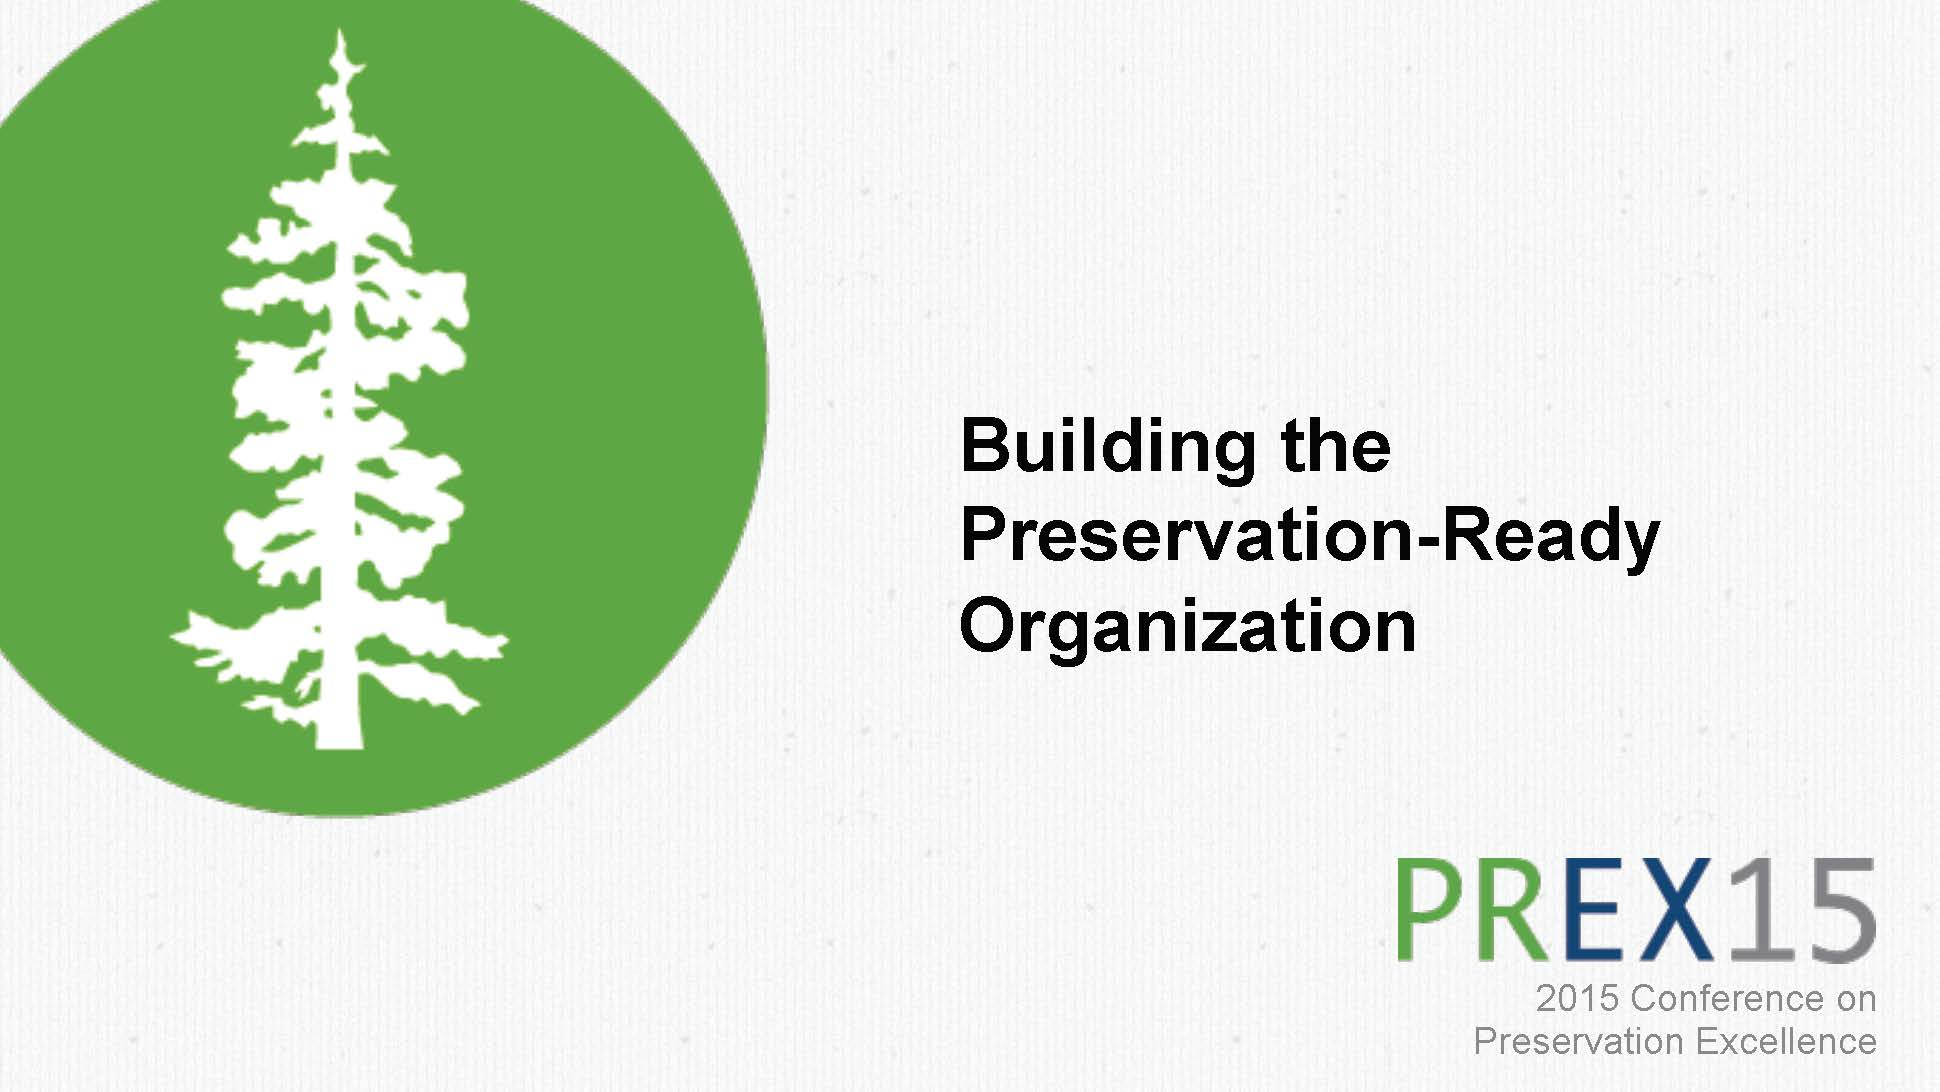 Session 4A: Building The Preservation-Ready Organization